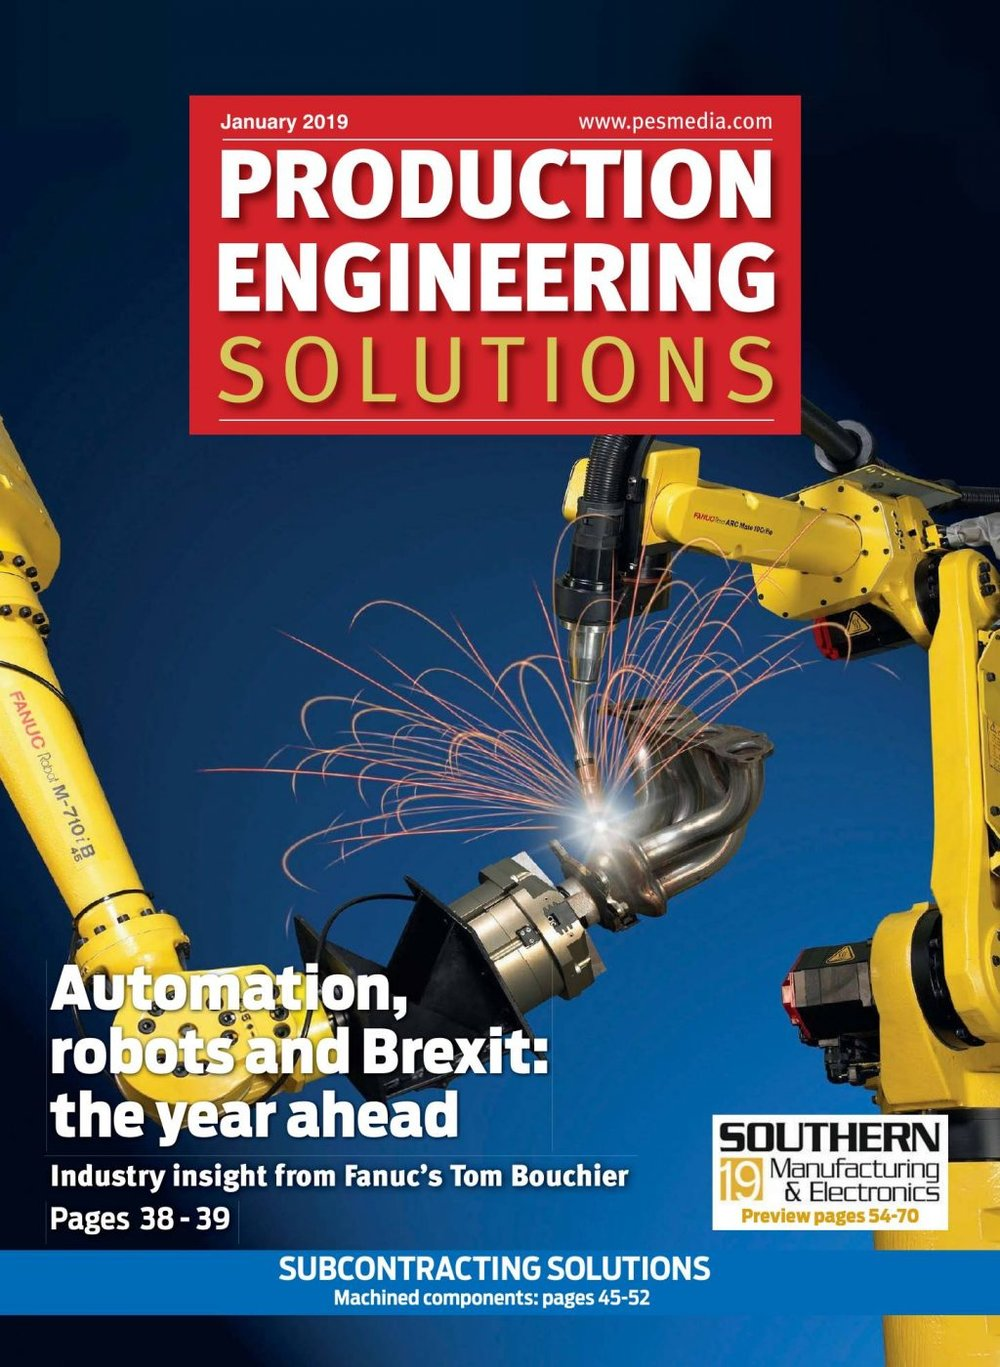 Production Engineering Solutions(pesmedia.com) - Circulated to a carefully researched and selected readership of over 15,000, Production Engineering Solutions delivers the latest news, product developments, topical features, application stories and event previews from across the UK manufacturing industry every month.Learn More